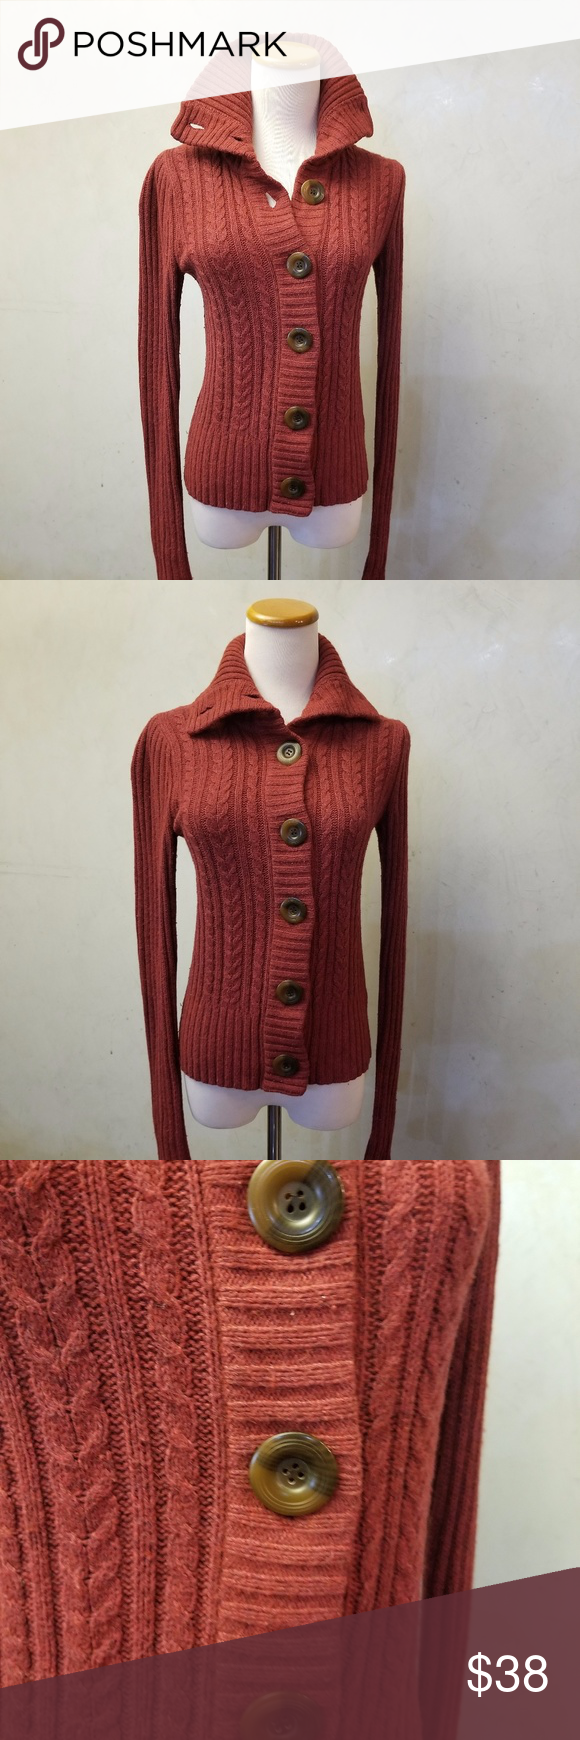 Red knit button down sweater | Big brown, Conditioning and Brown